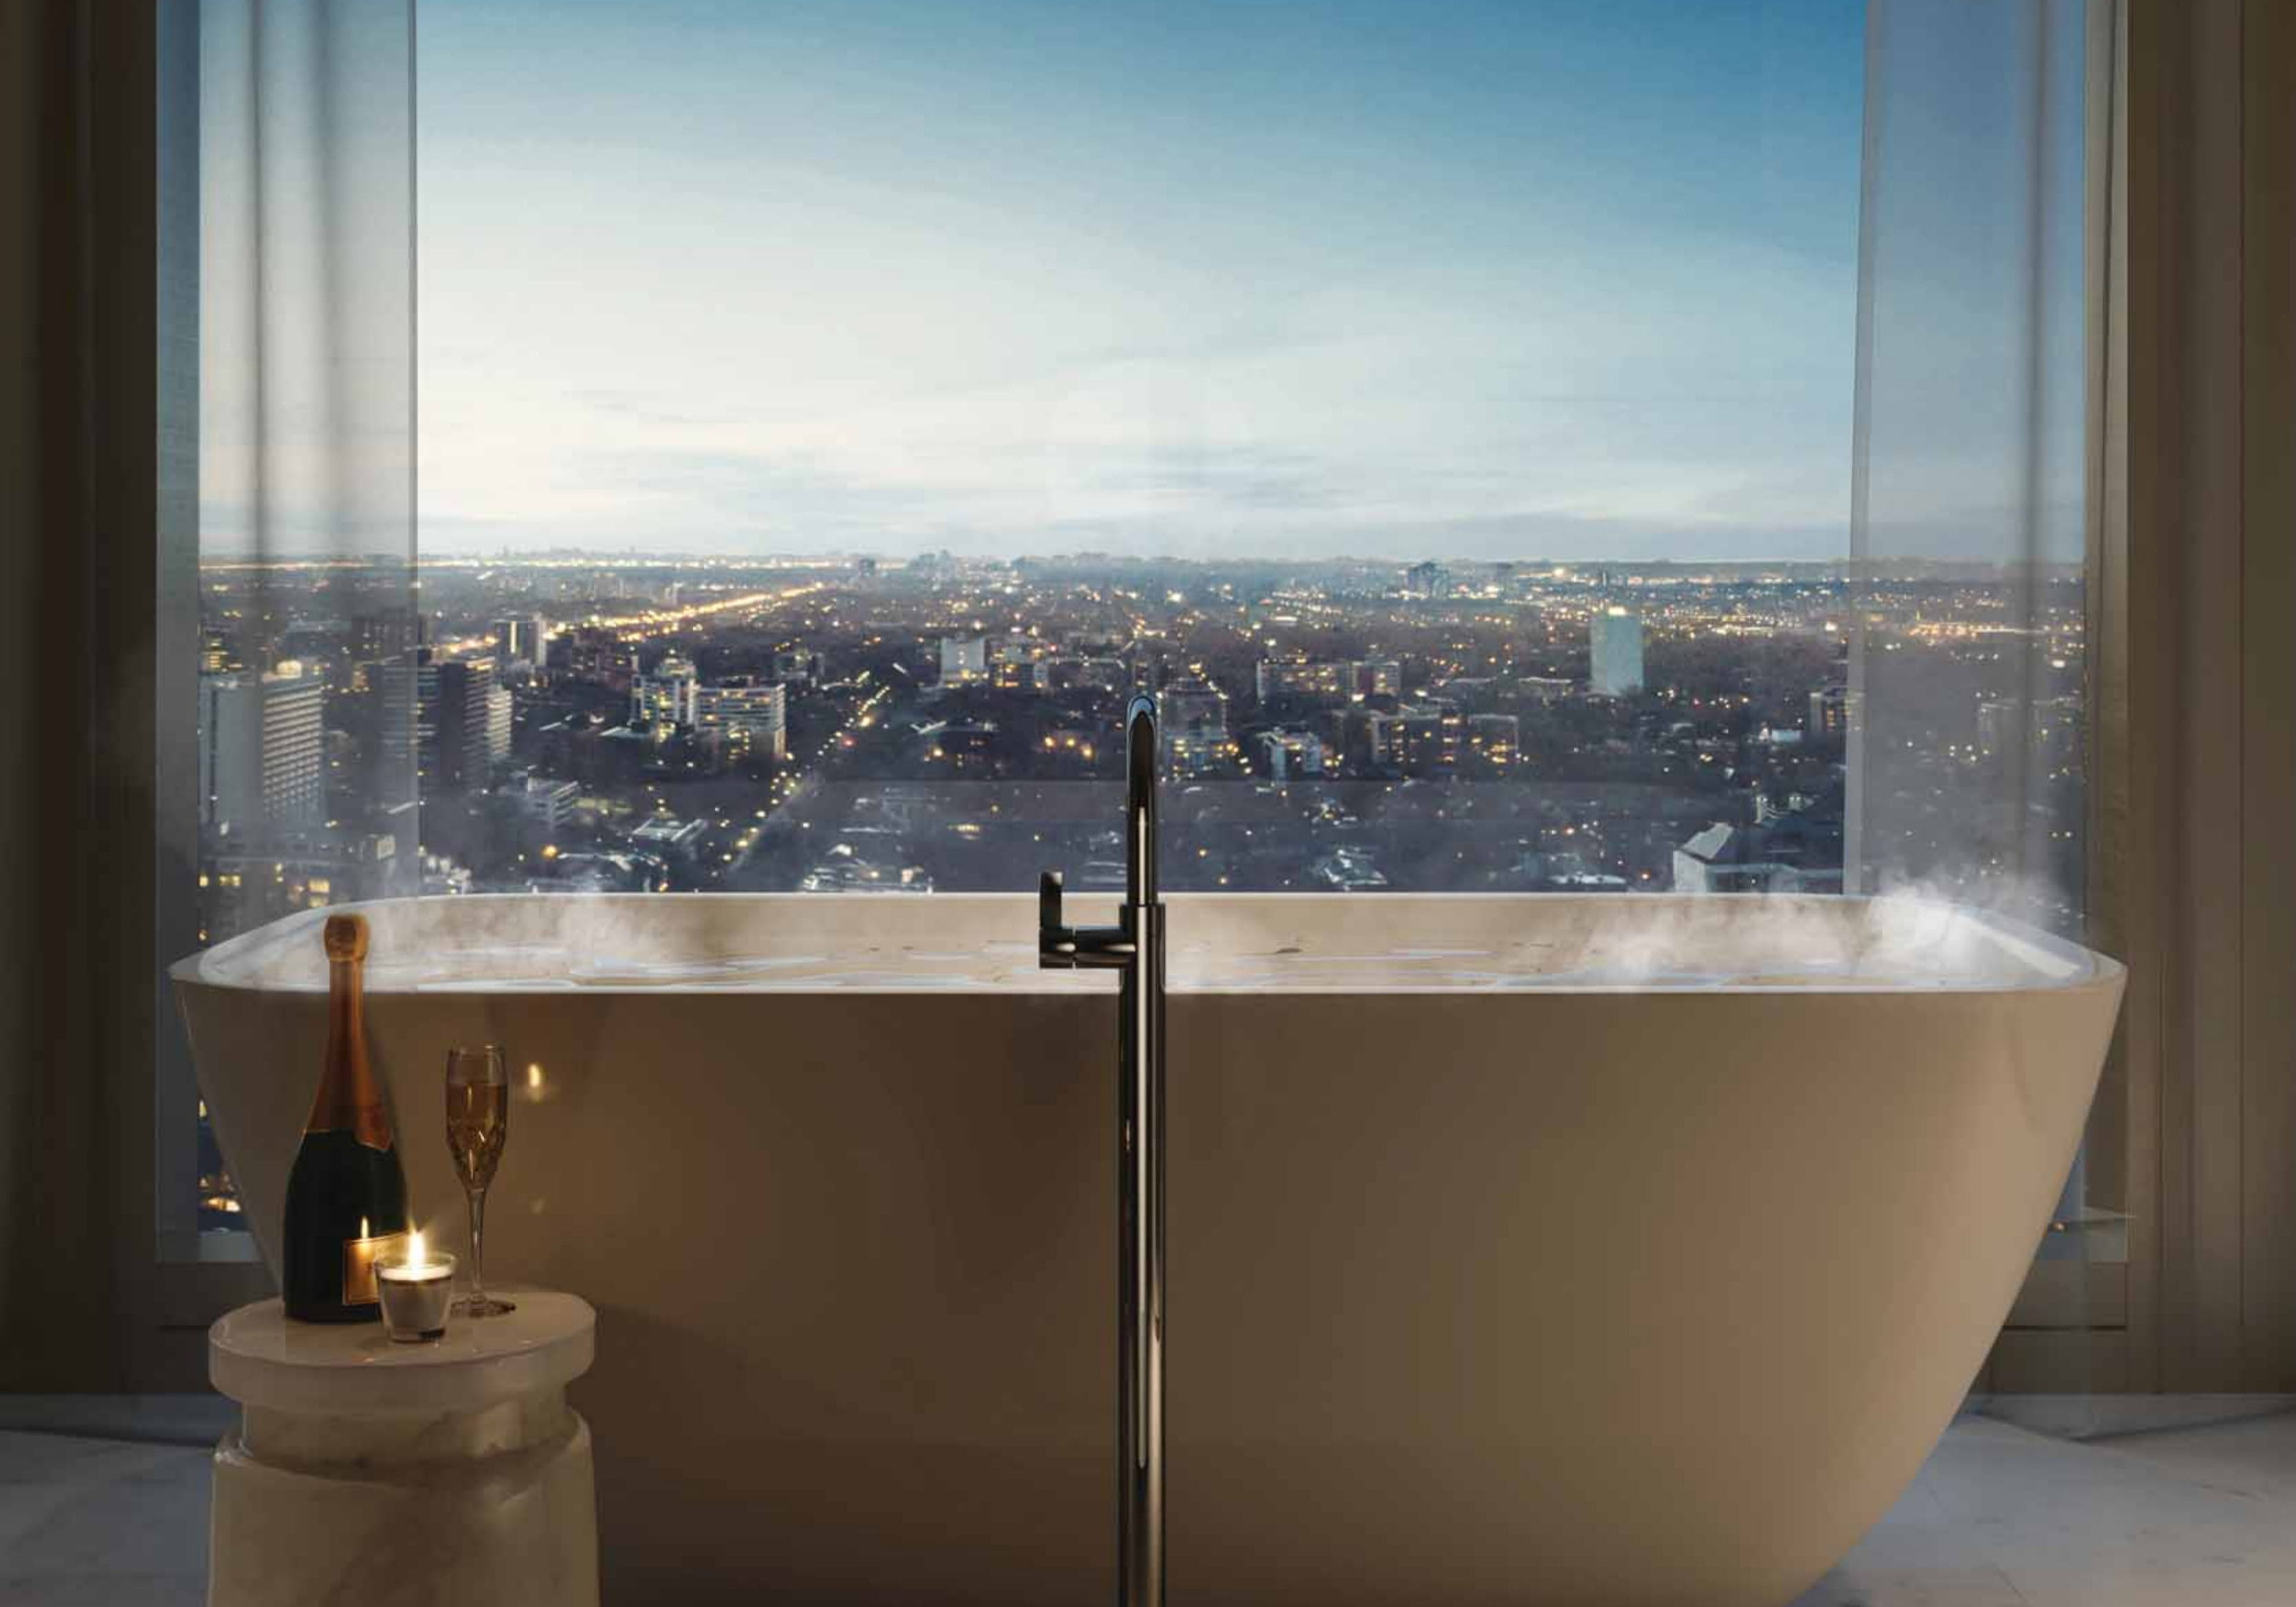 50 Scollard Street with bathtub and view over city